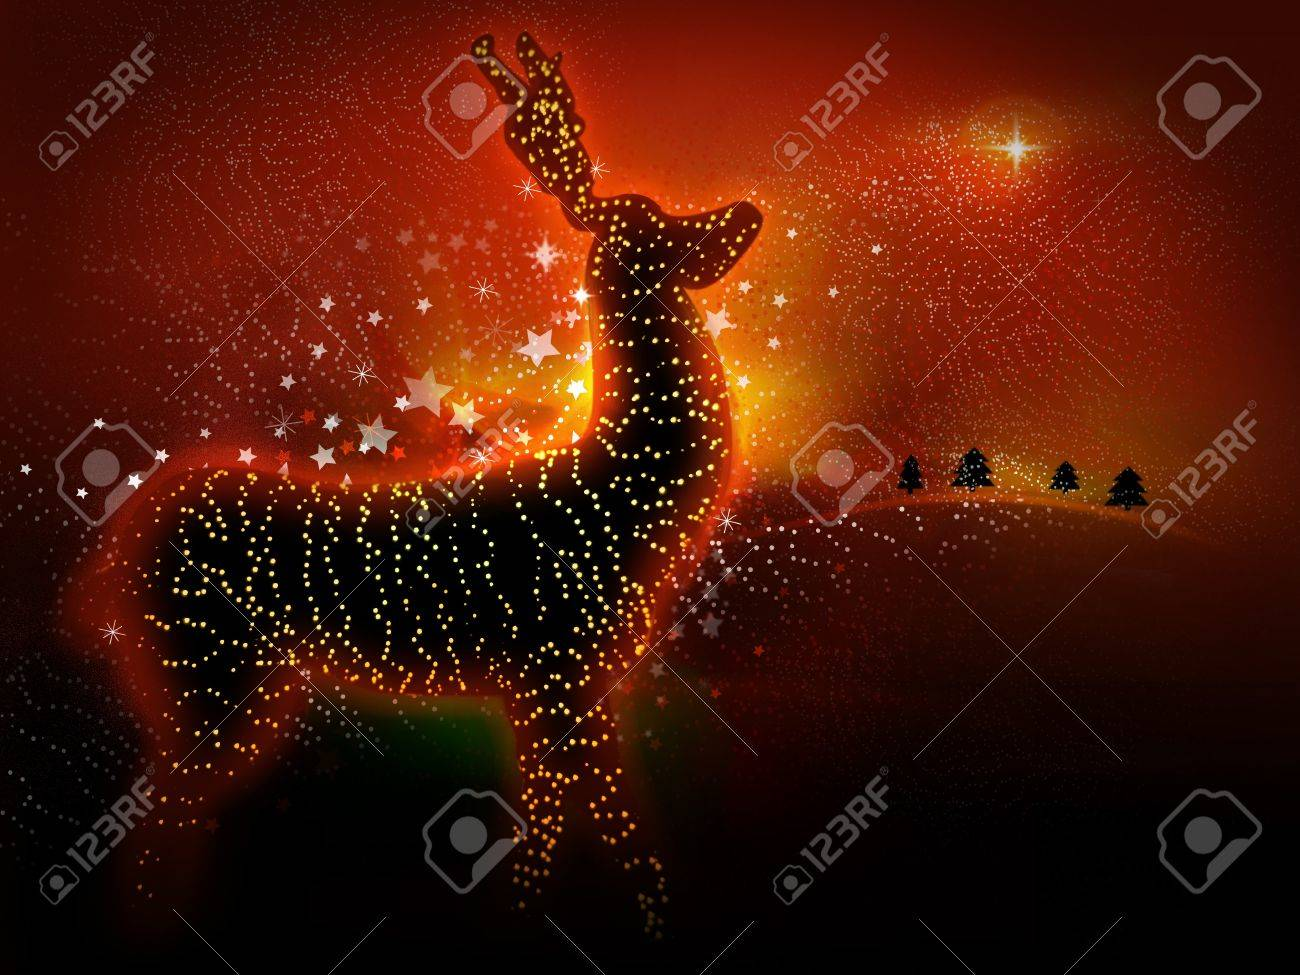 Christmas reindeer with glowing lights. Perfect as a Christmas card Stock Photo - 8328010